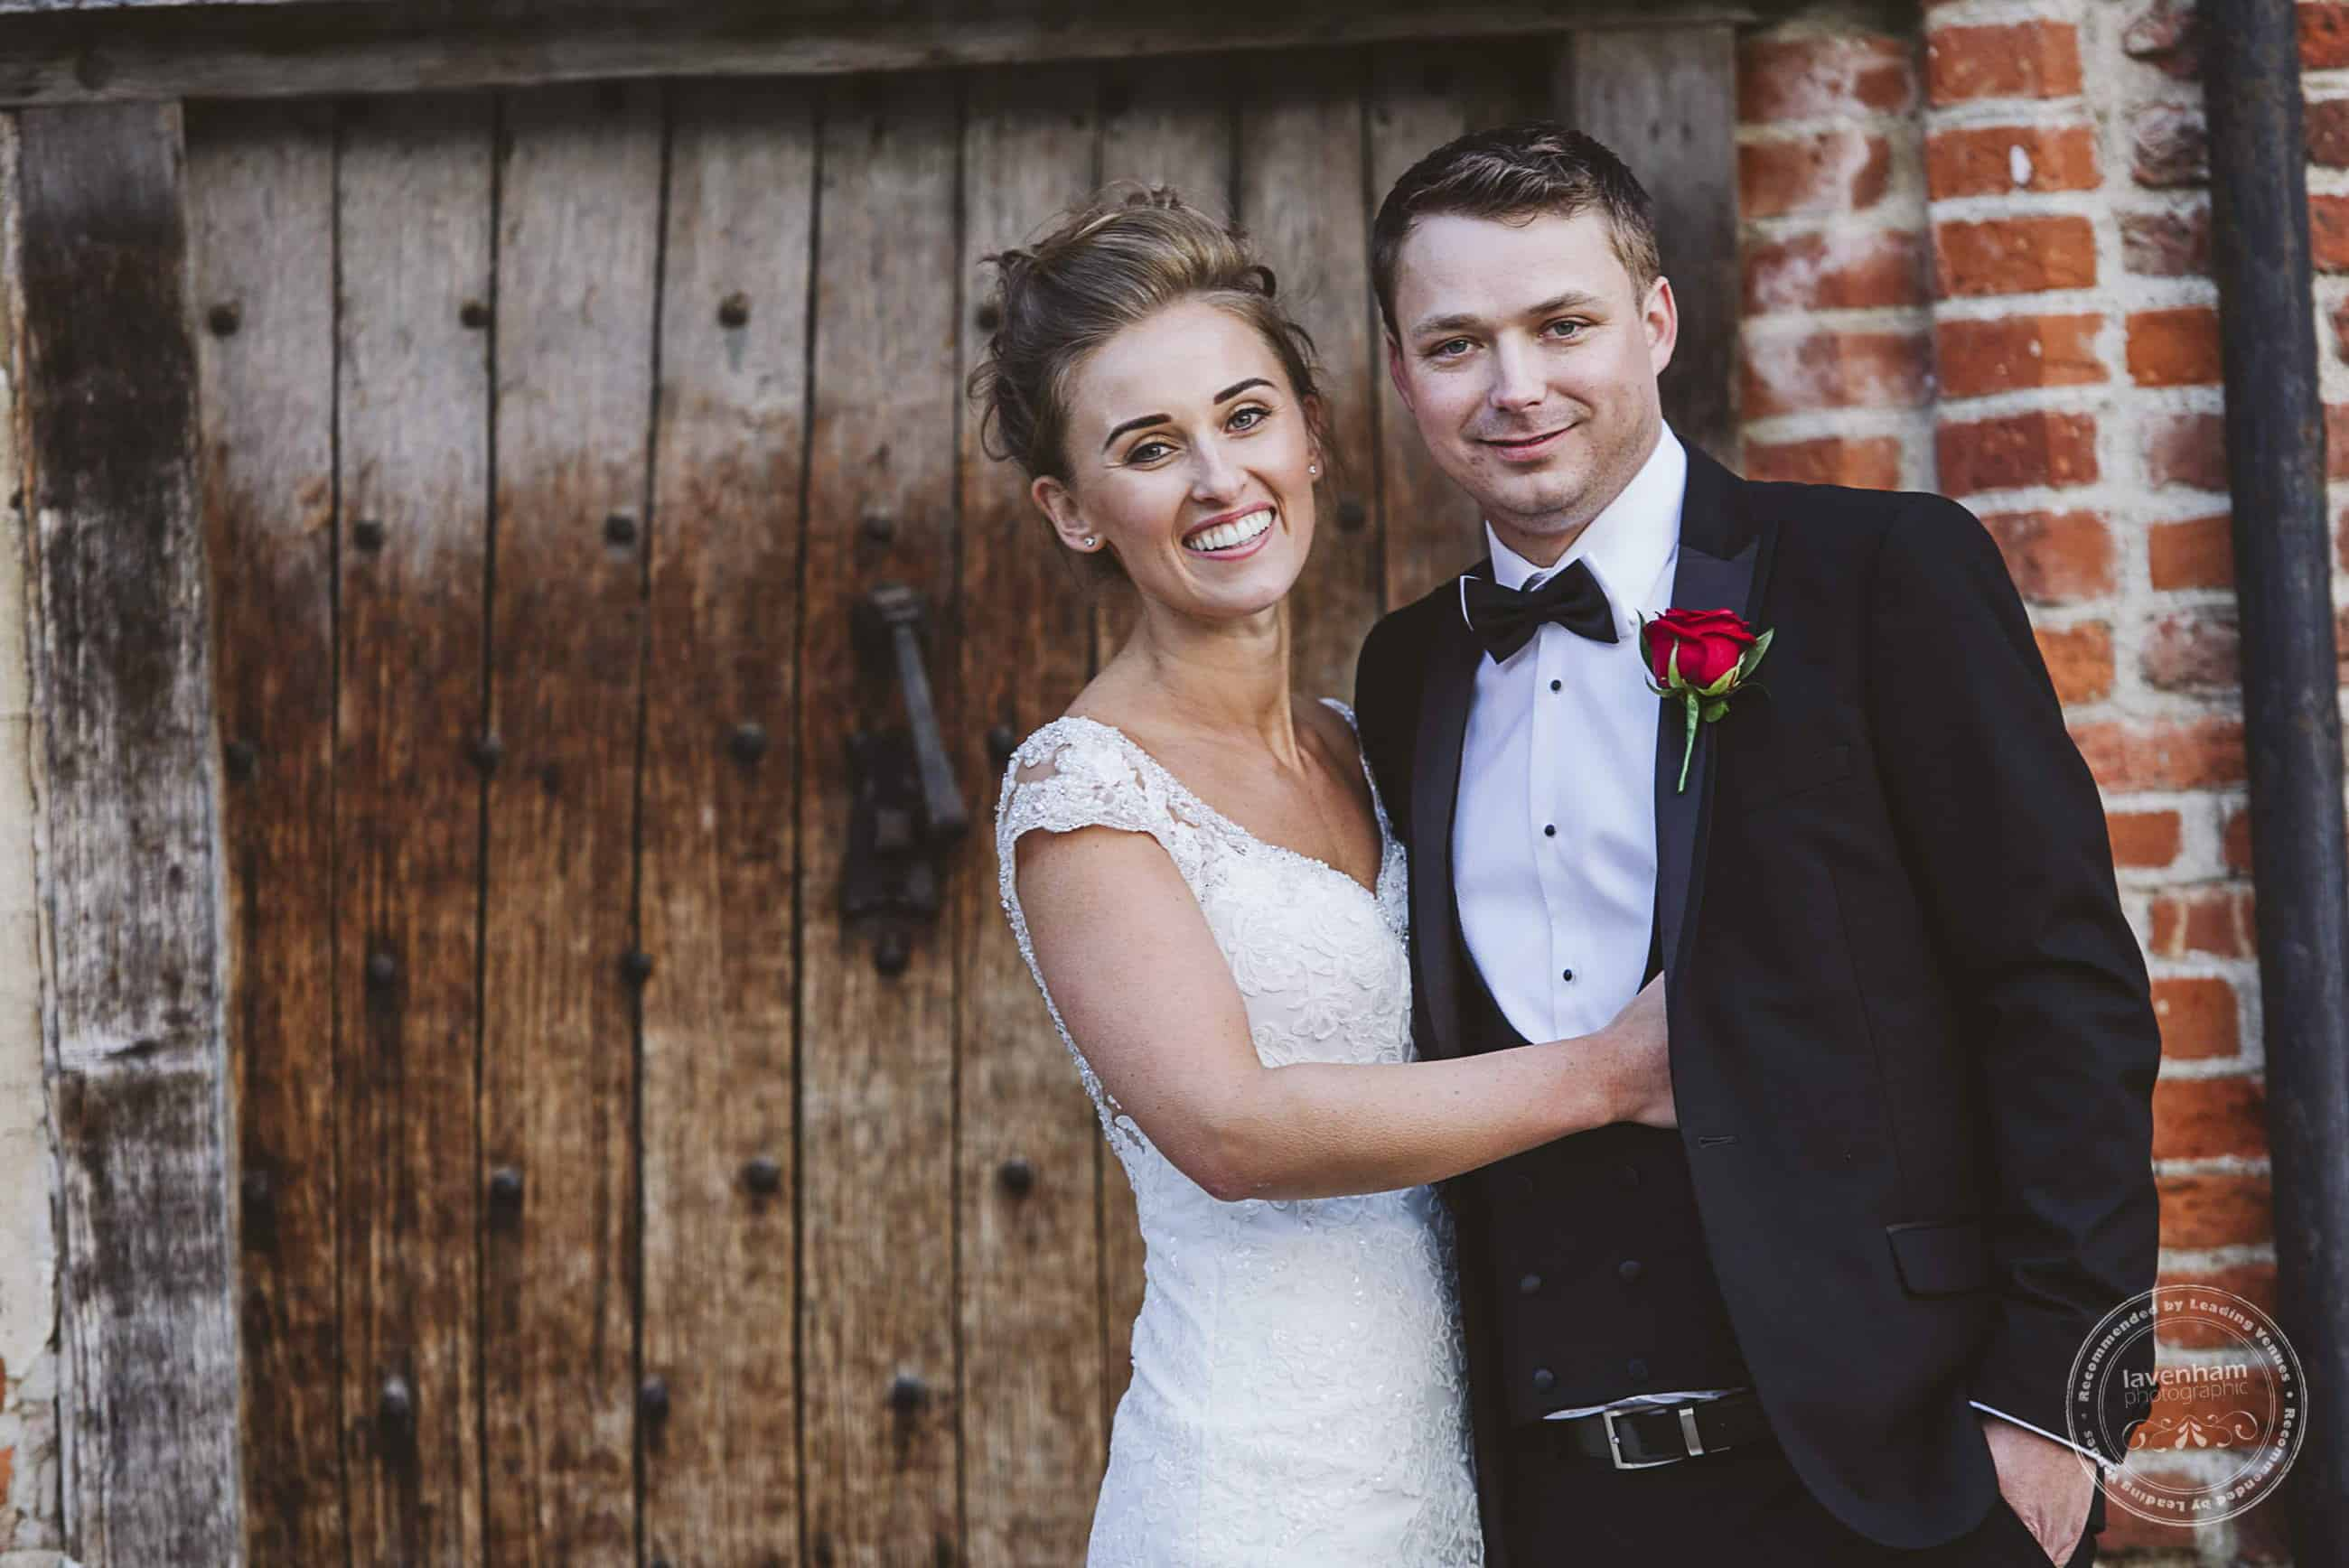 Relaxed, comfortable posing of the bride and groom in front of one of the lovely old wooden doors at Leez Priory. There's so much texture at Leez!